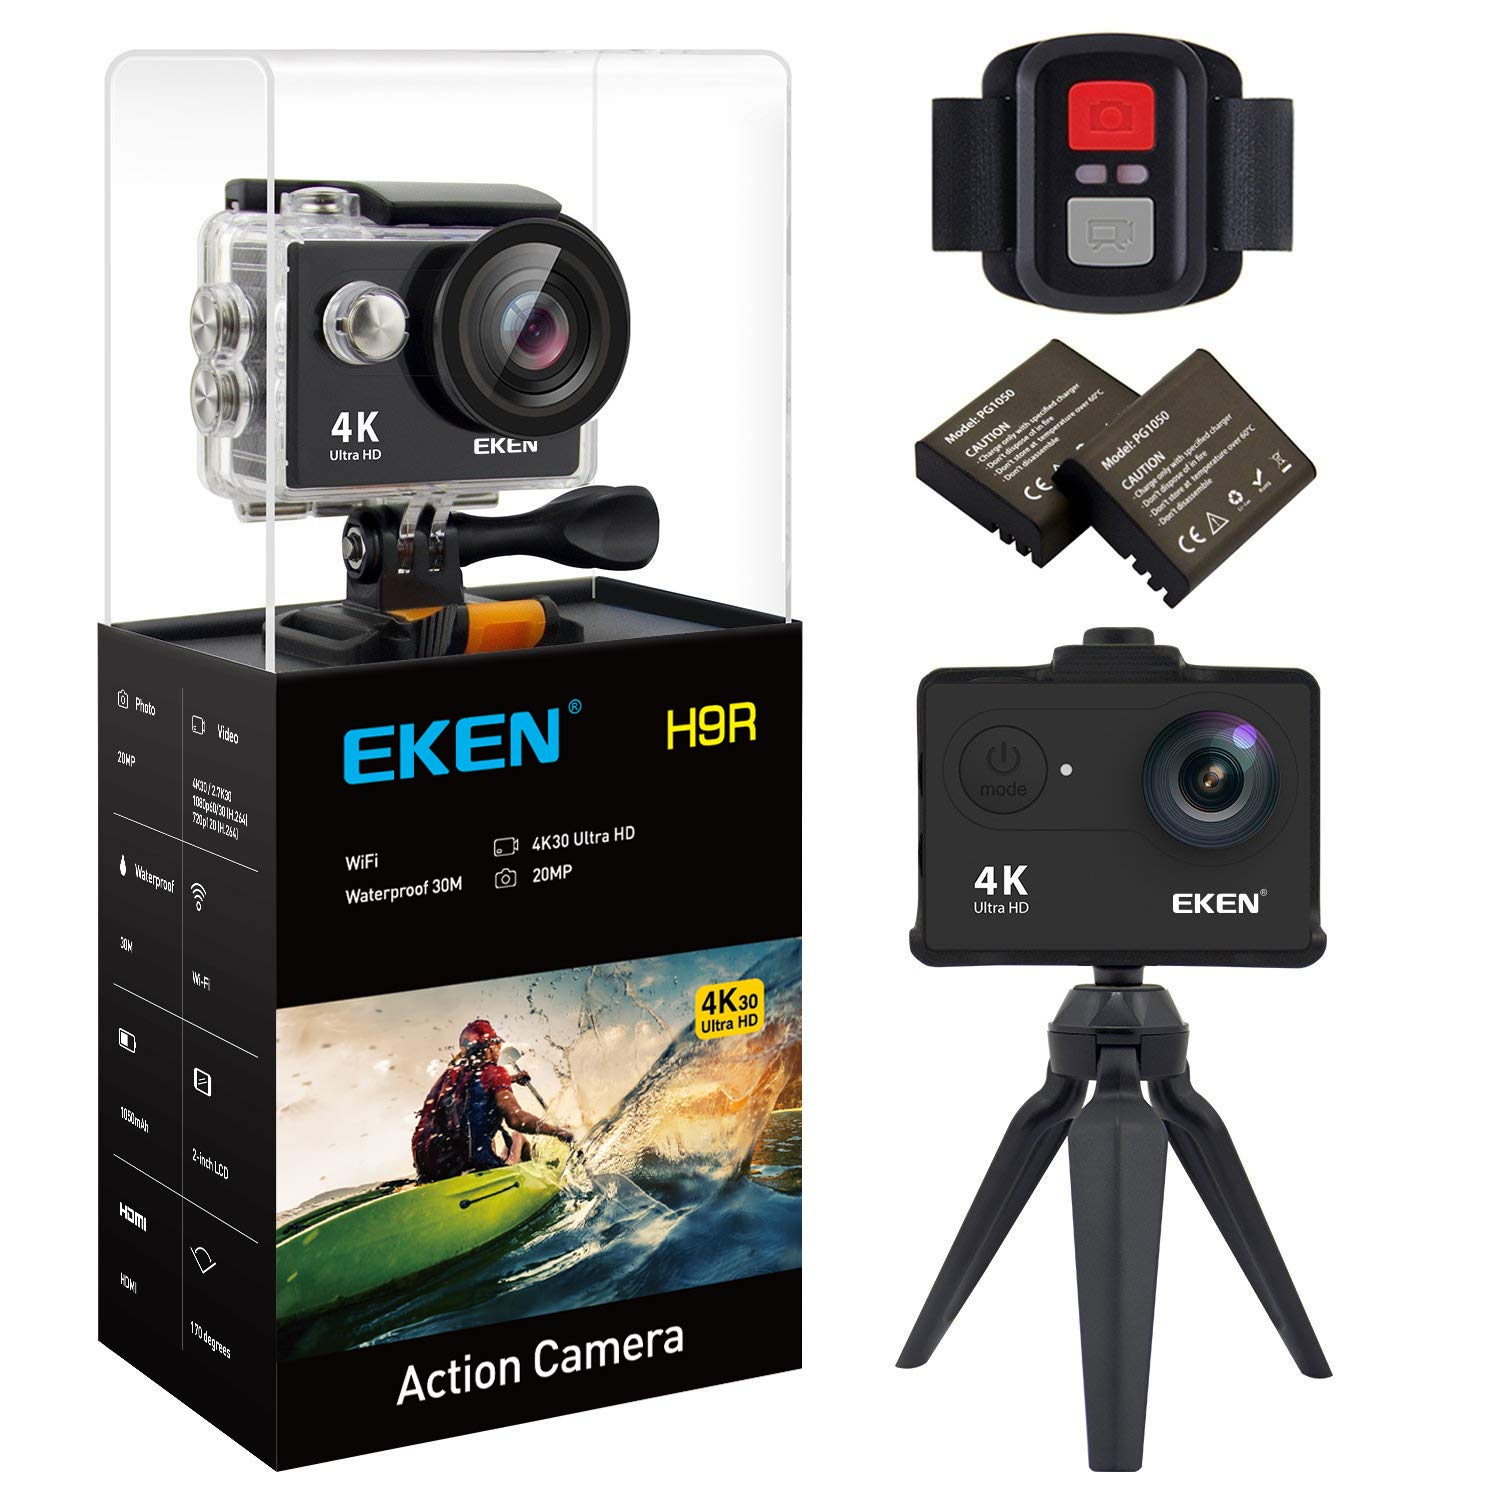 New EKEN H9R Action Camera 4K WiFi Waterproof Sports Camera Full HD 4K30 2.7K30 1080p60 720p120 Video Camera 20MP Photo and 170 Wide Angle Lens Includes 11 Mountings Kit 2 Batteries Black by EKEN